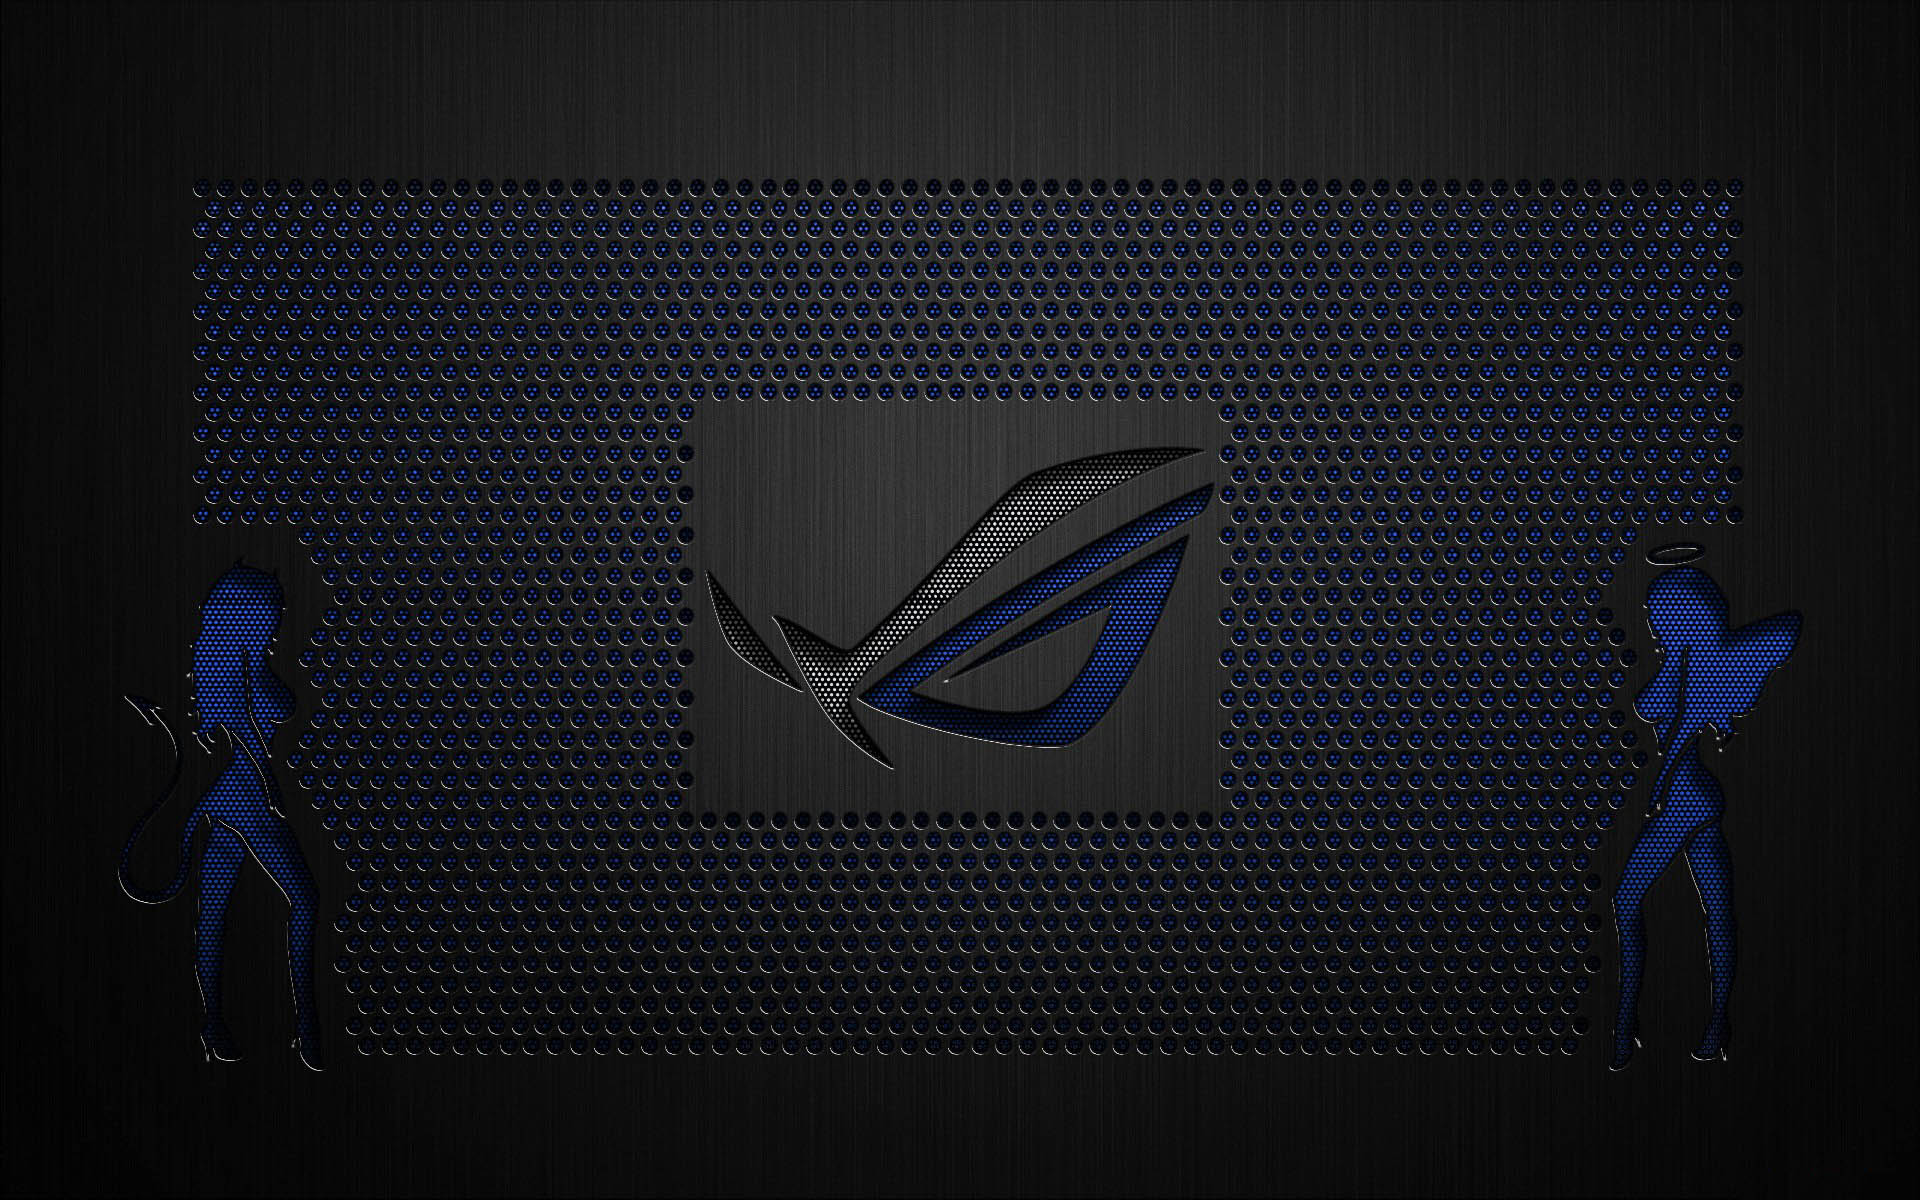 Rog Wallpaper Full Hd Asus Technology Hd Wallpapers High Quality All Hd